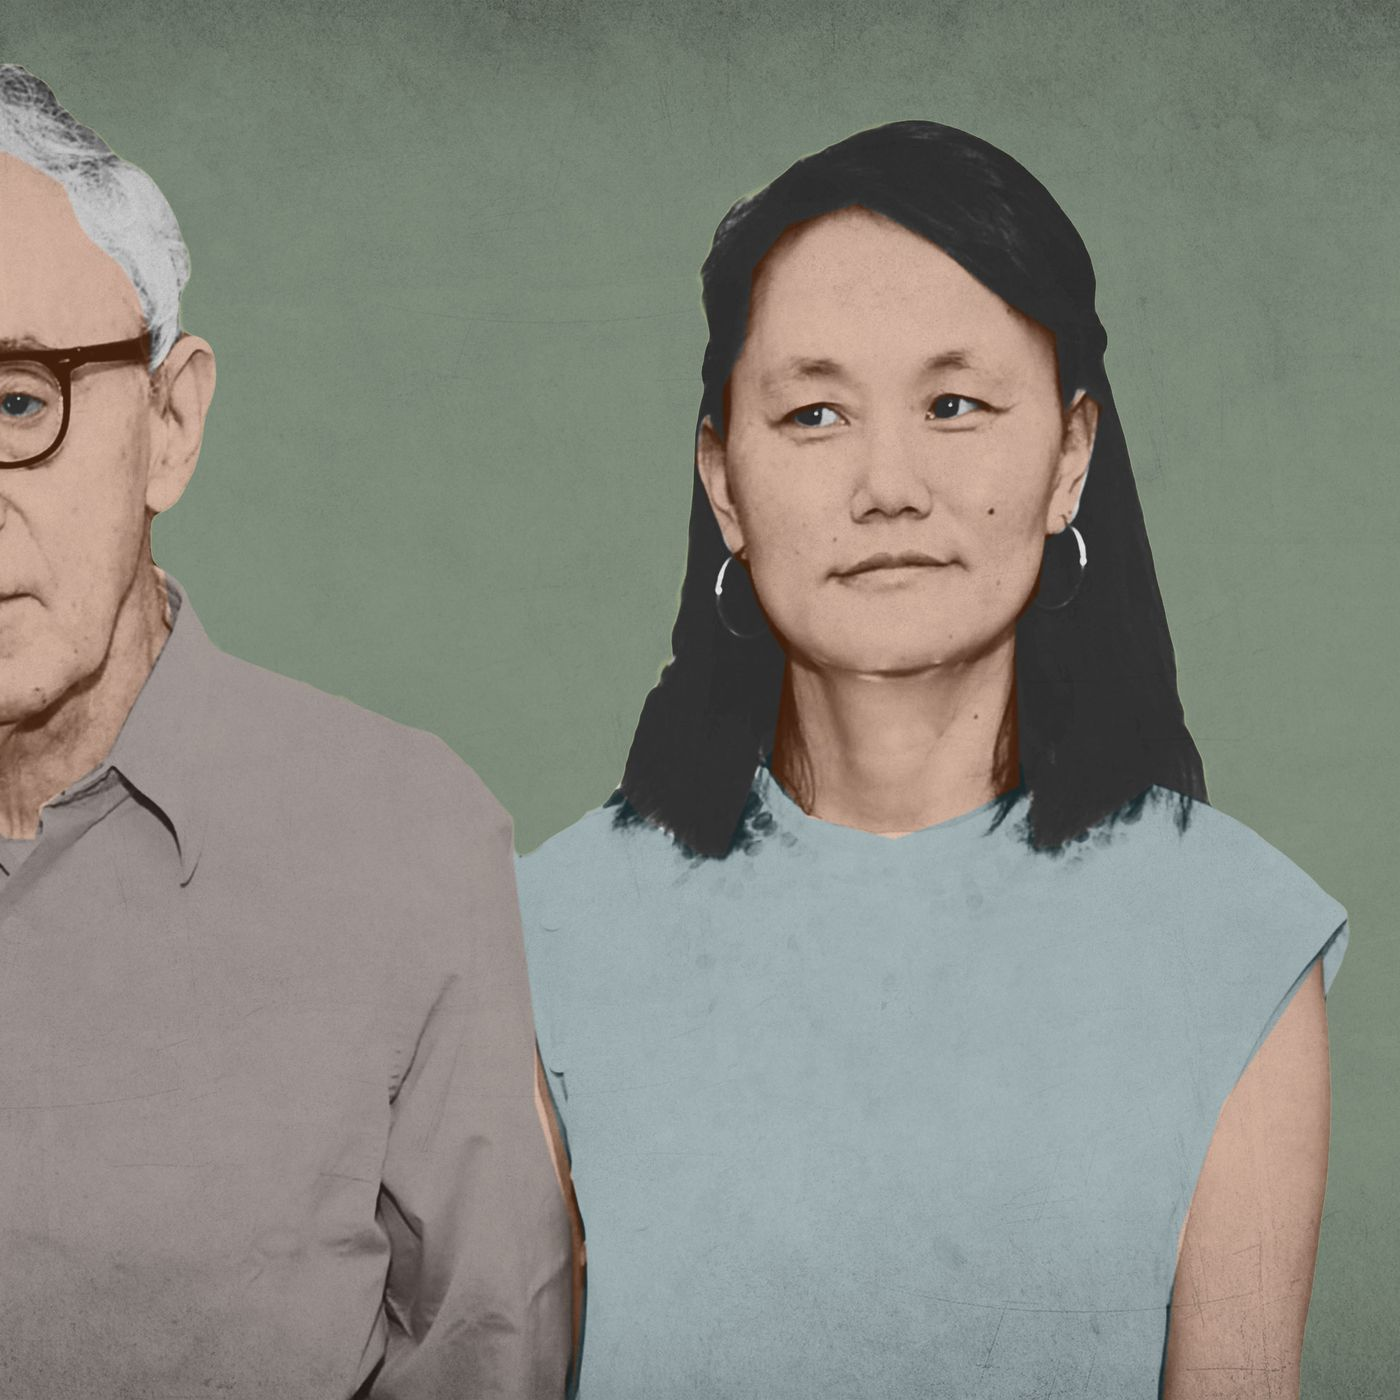 theringer.com - Lindsay Zoladz - Petty Pariahs: The Problems of a Soon-Yi Previn Profile